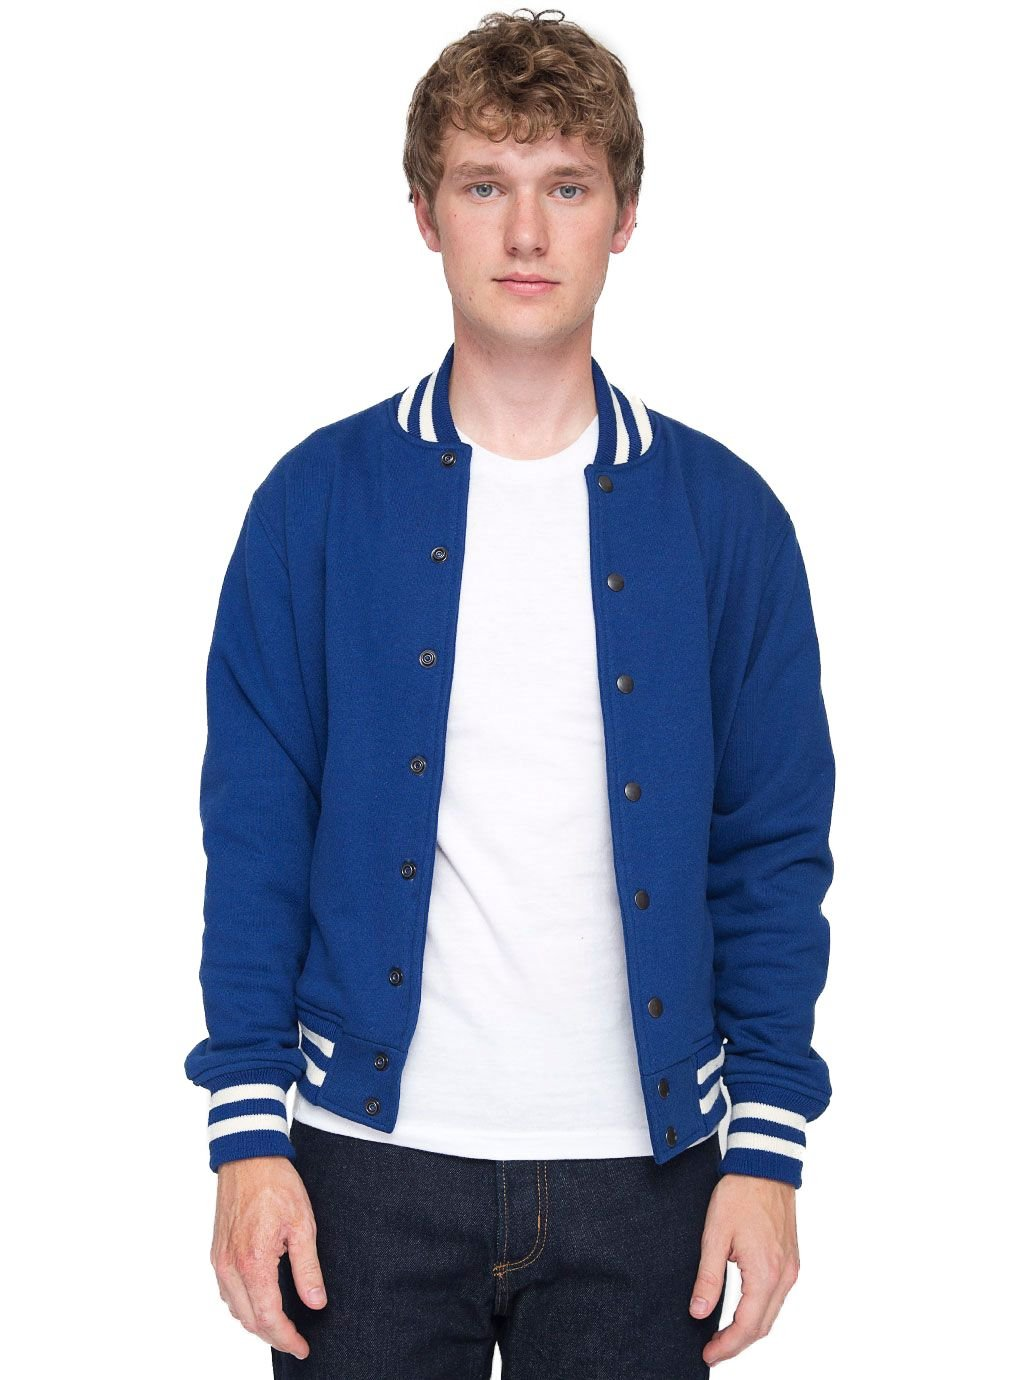 American Apparel Men's Heavy Terry Club Jacket, Royal Blue, Small